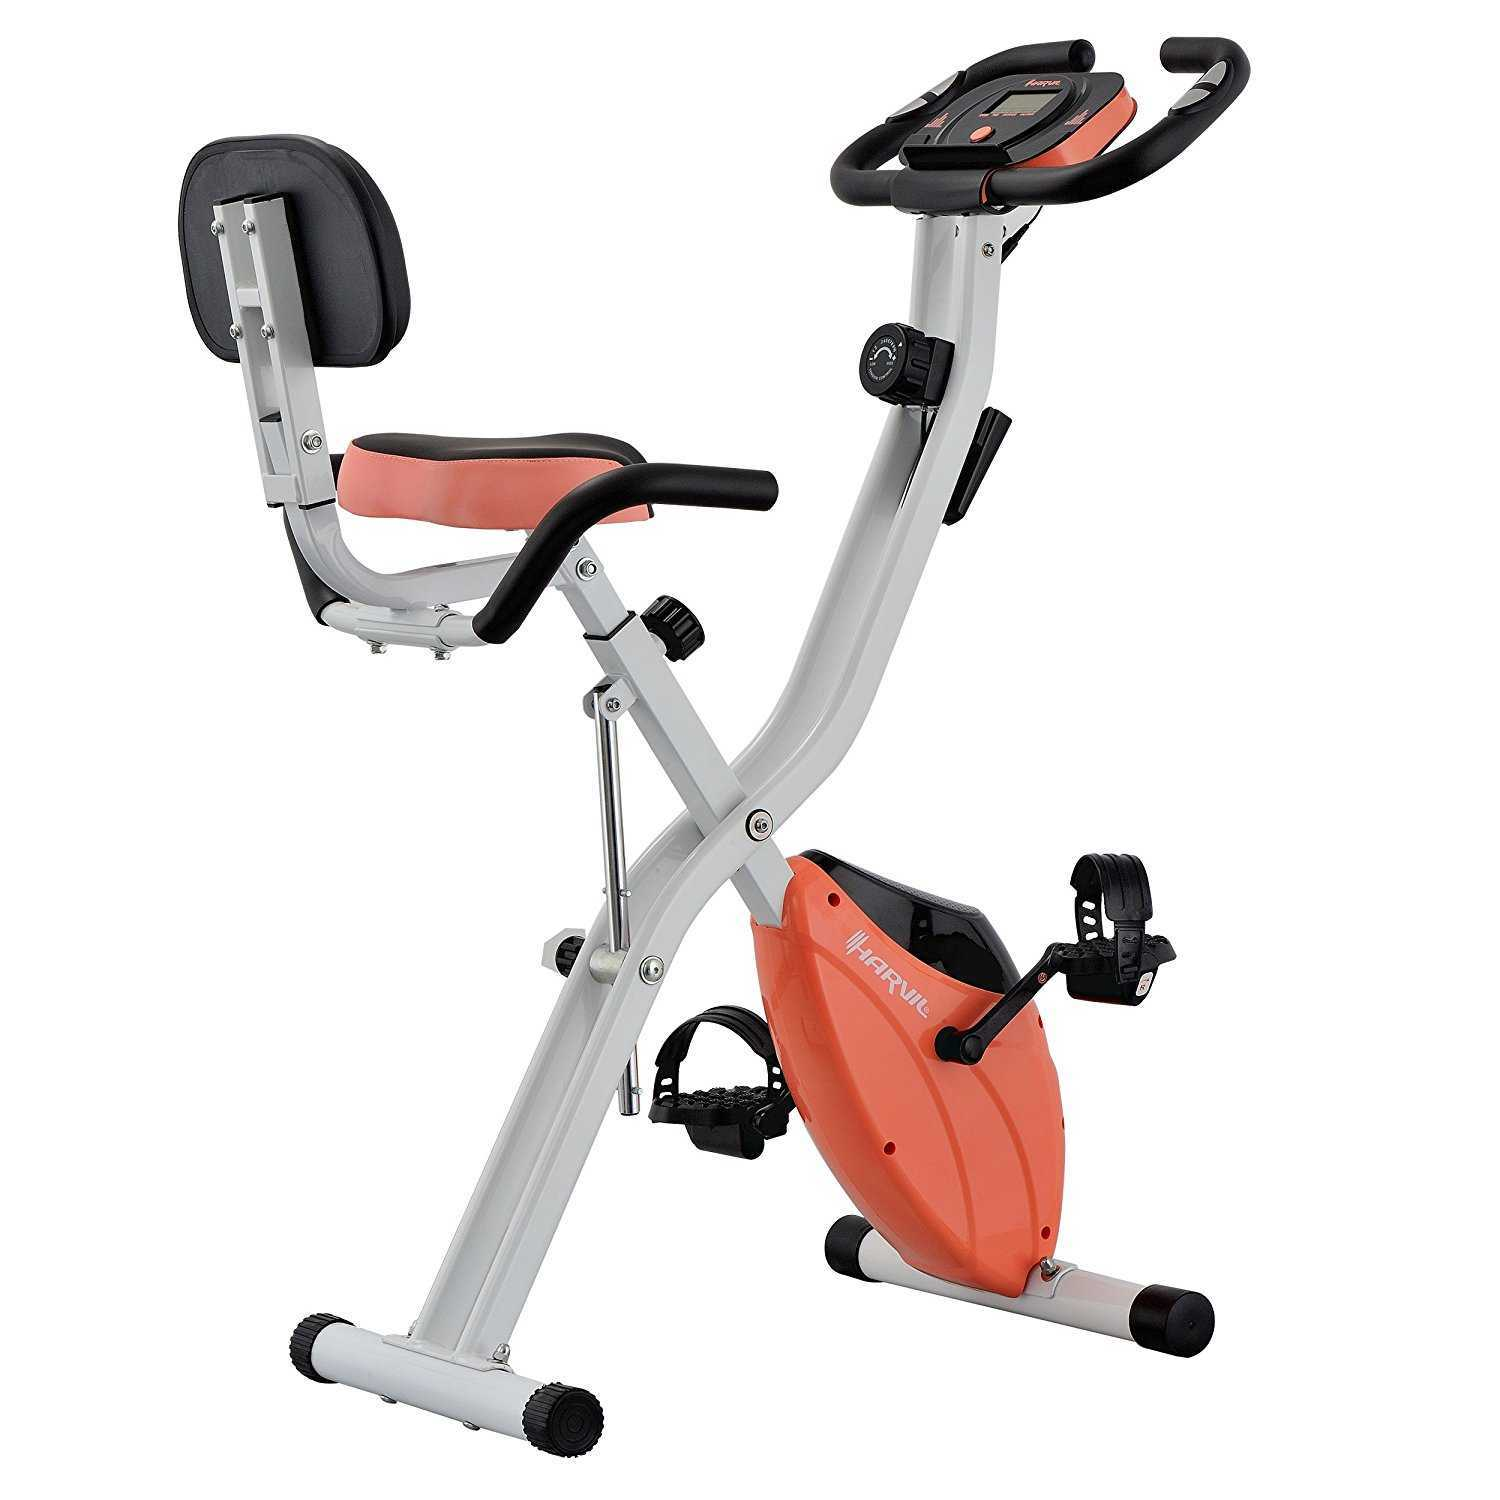 Havril Foldable Exercise Bike Unfolded View